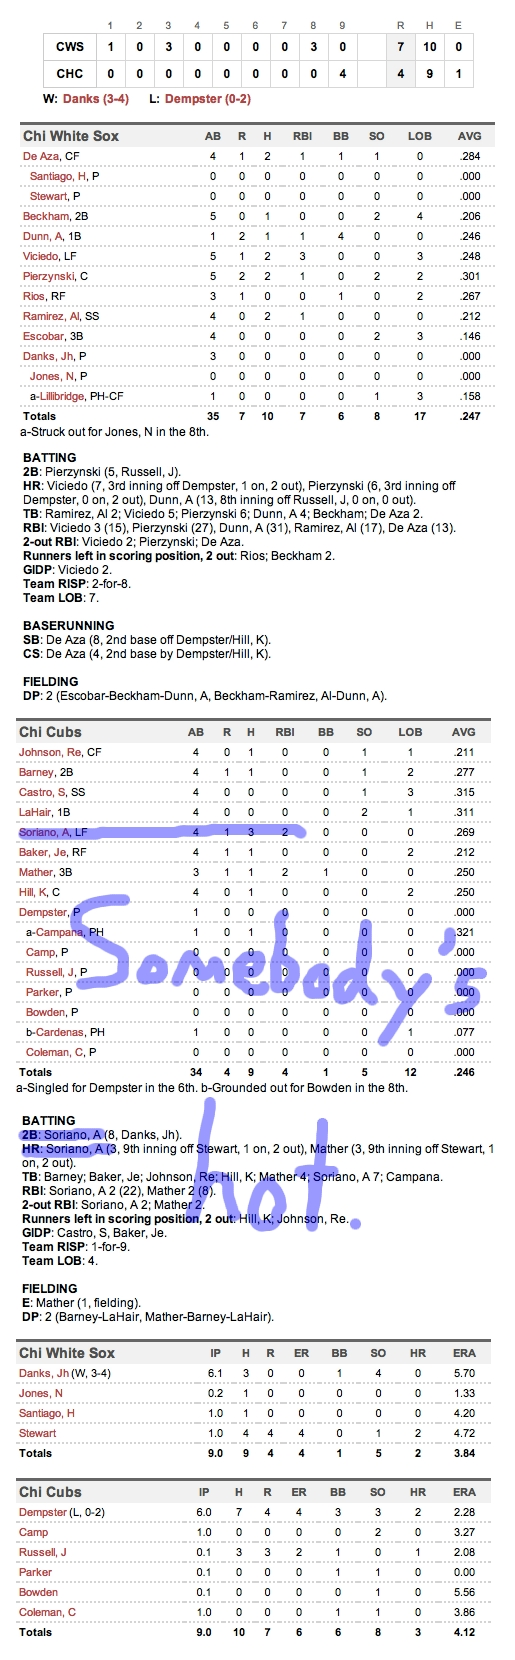 Enhanced Box Score: White Sox 7, Cubs 4 – May 19, 2012